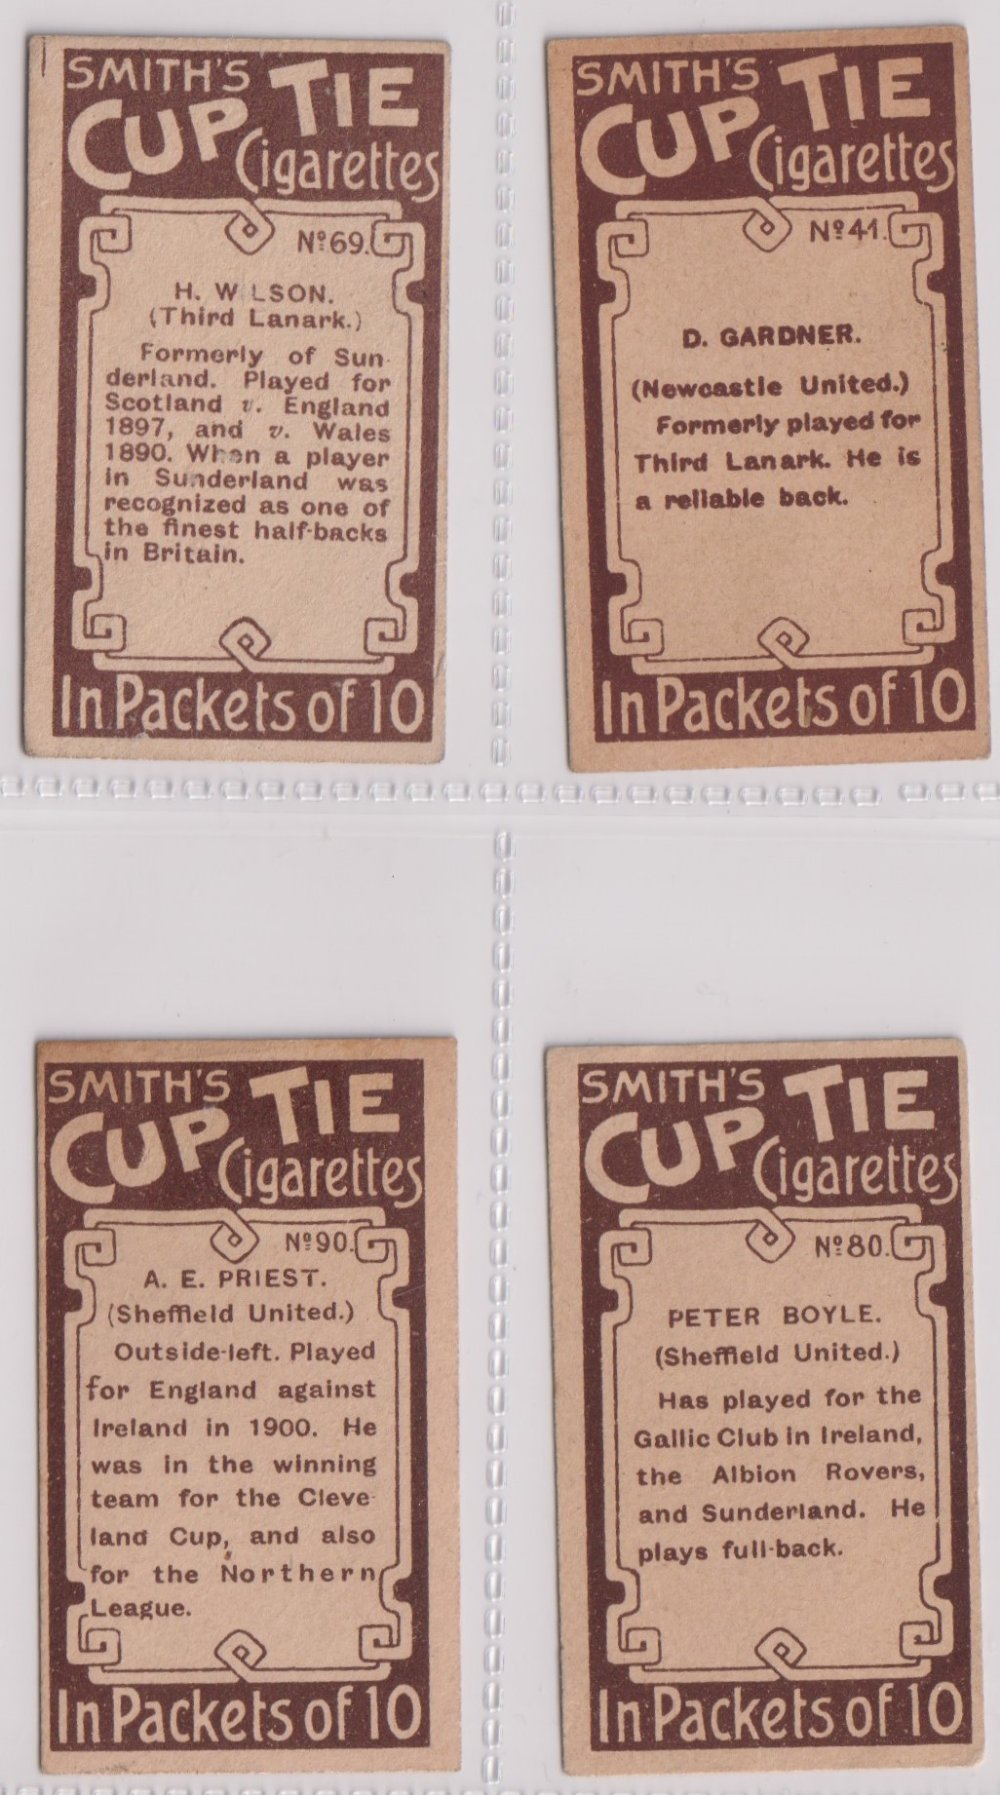 Cigarette cards, Smith's, Footballers (Brown back) 4 cards nos 41, 69, 80, & 90 (sl edge knocks - Image 2 of 2